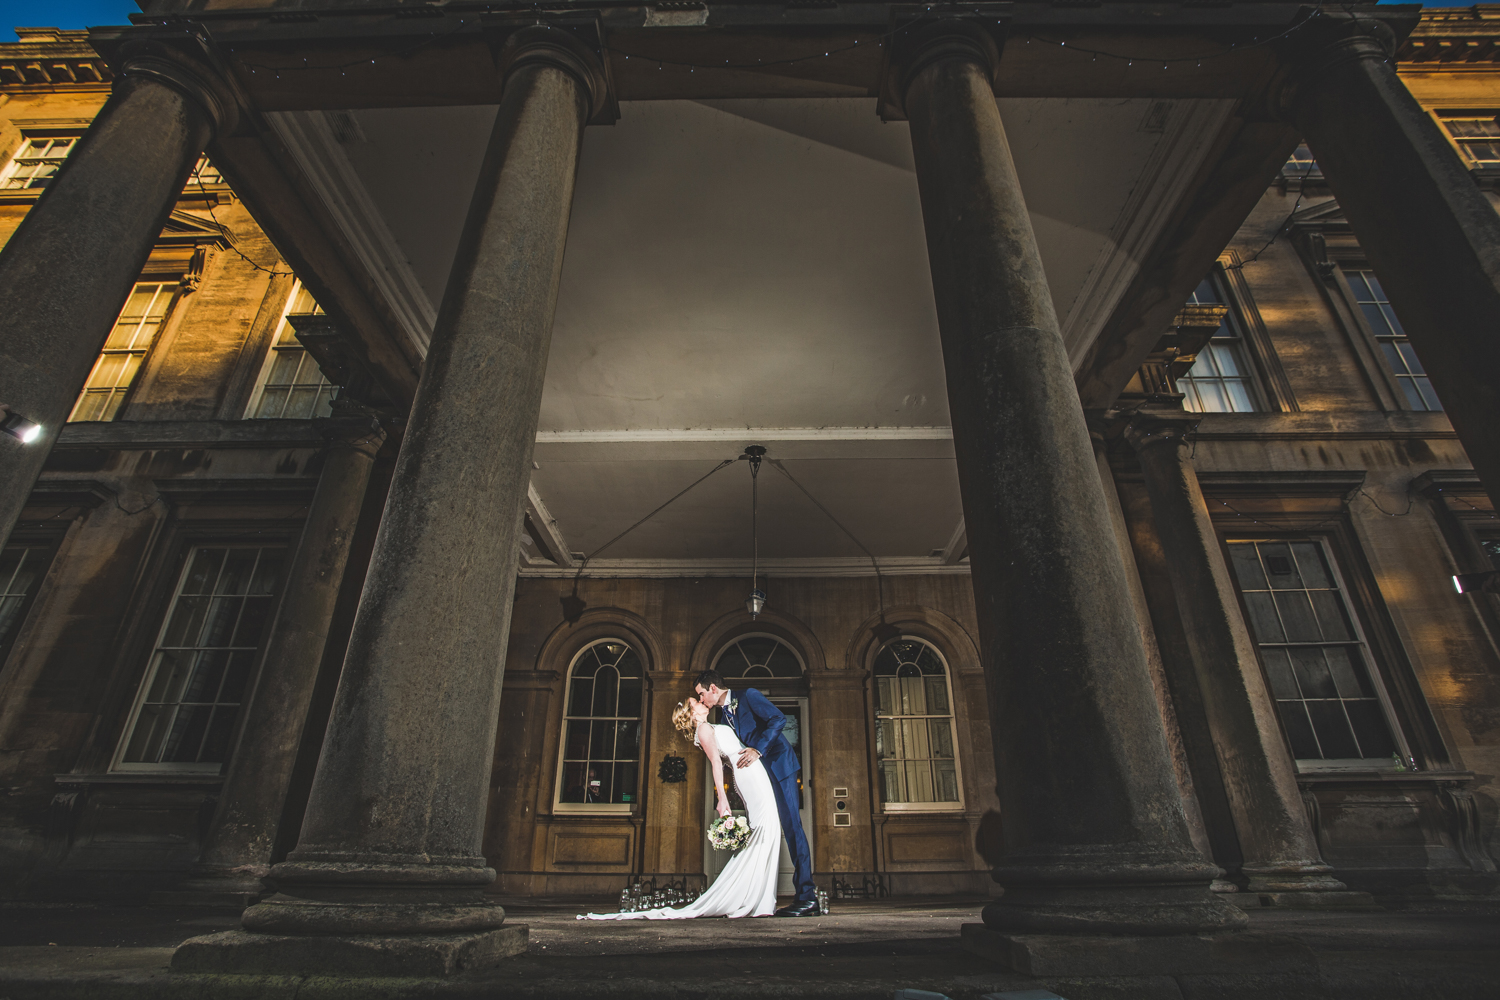 prestwold hall wedding photography-64.jpg